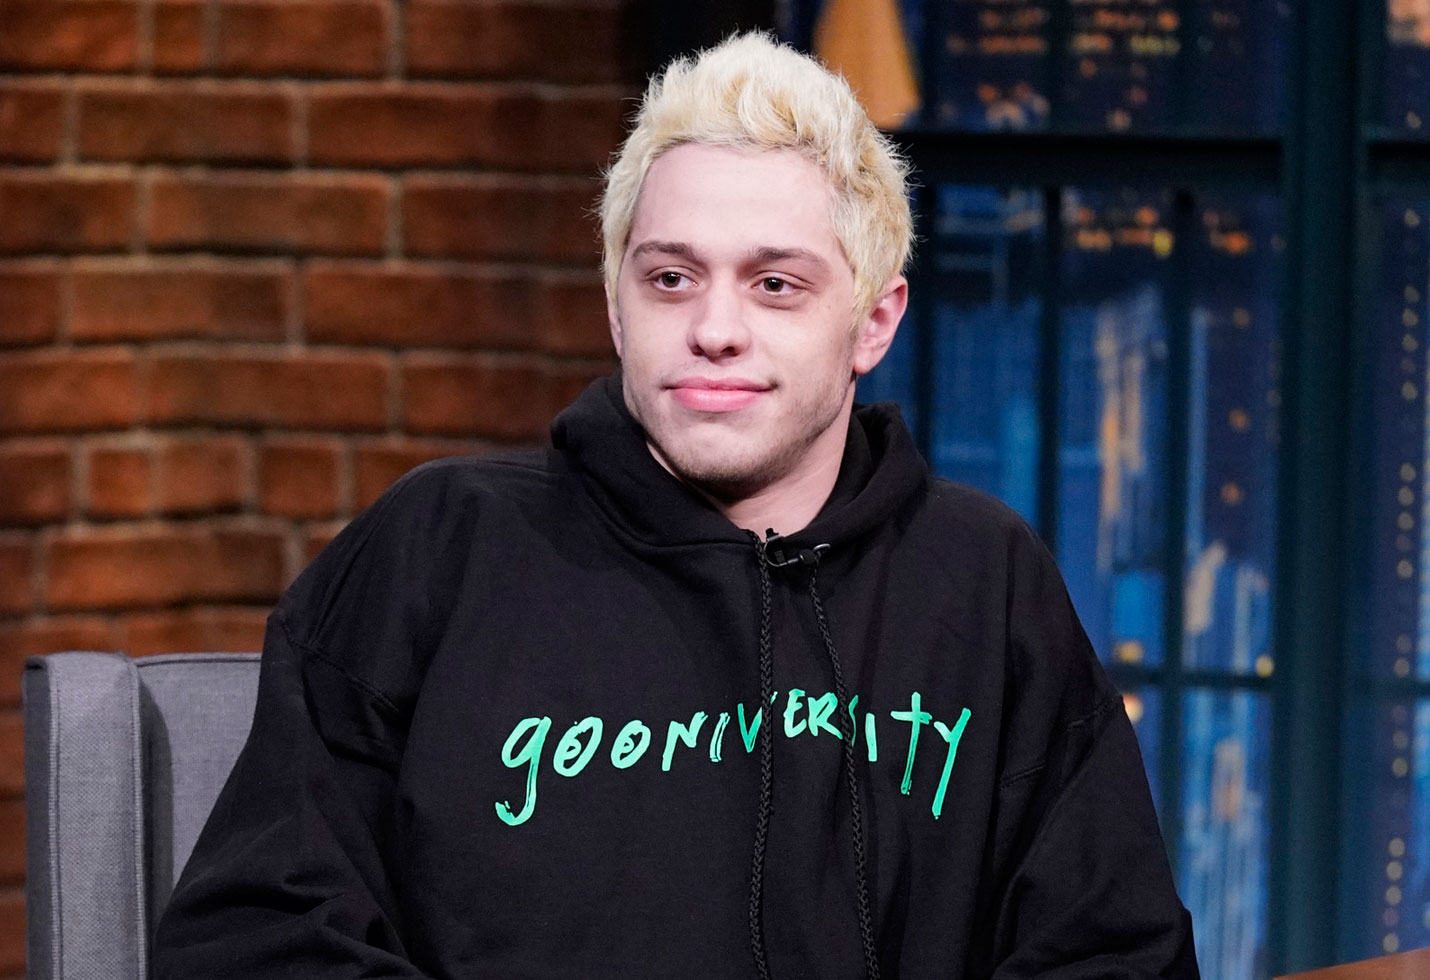 Pete davidson online bullying suicide